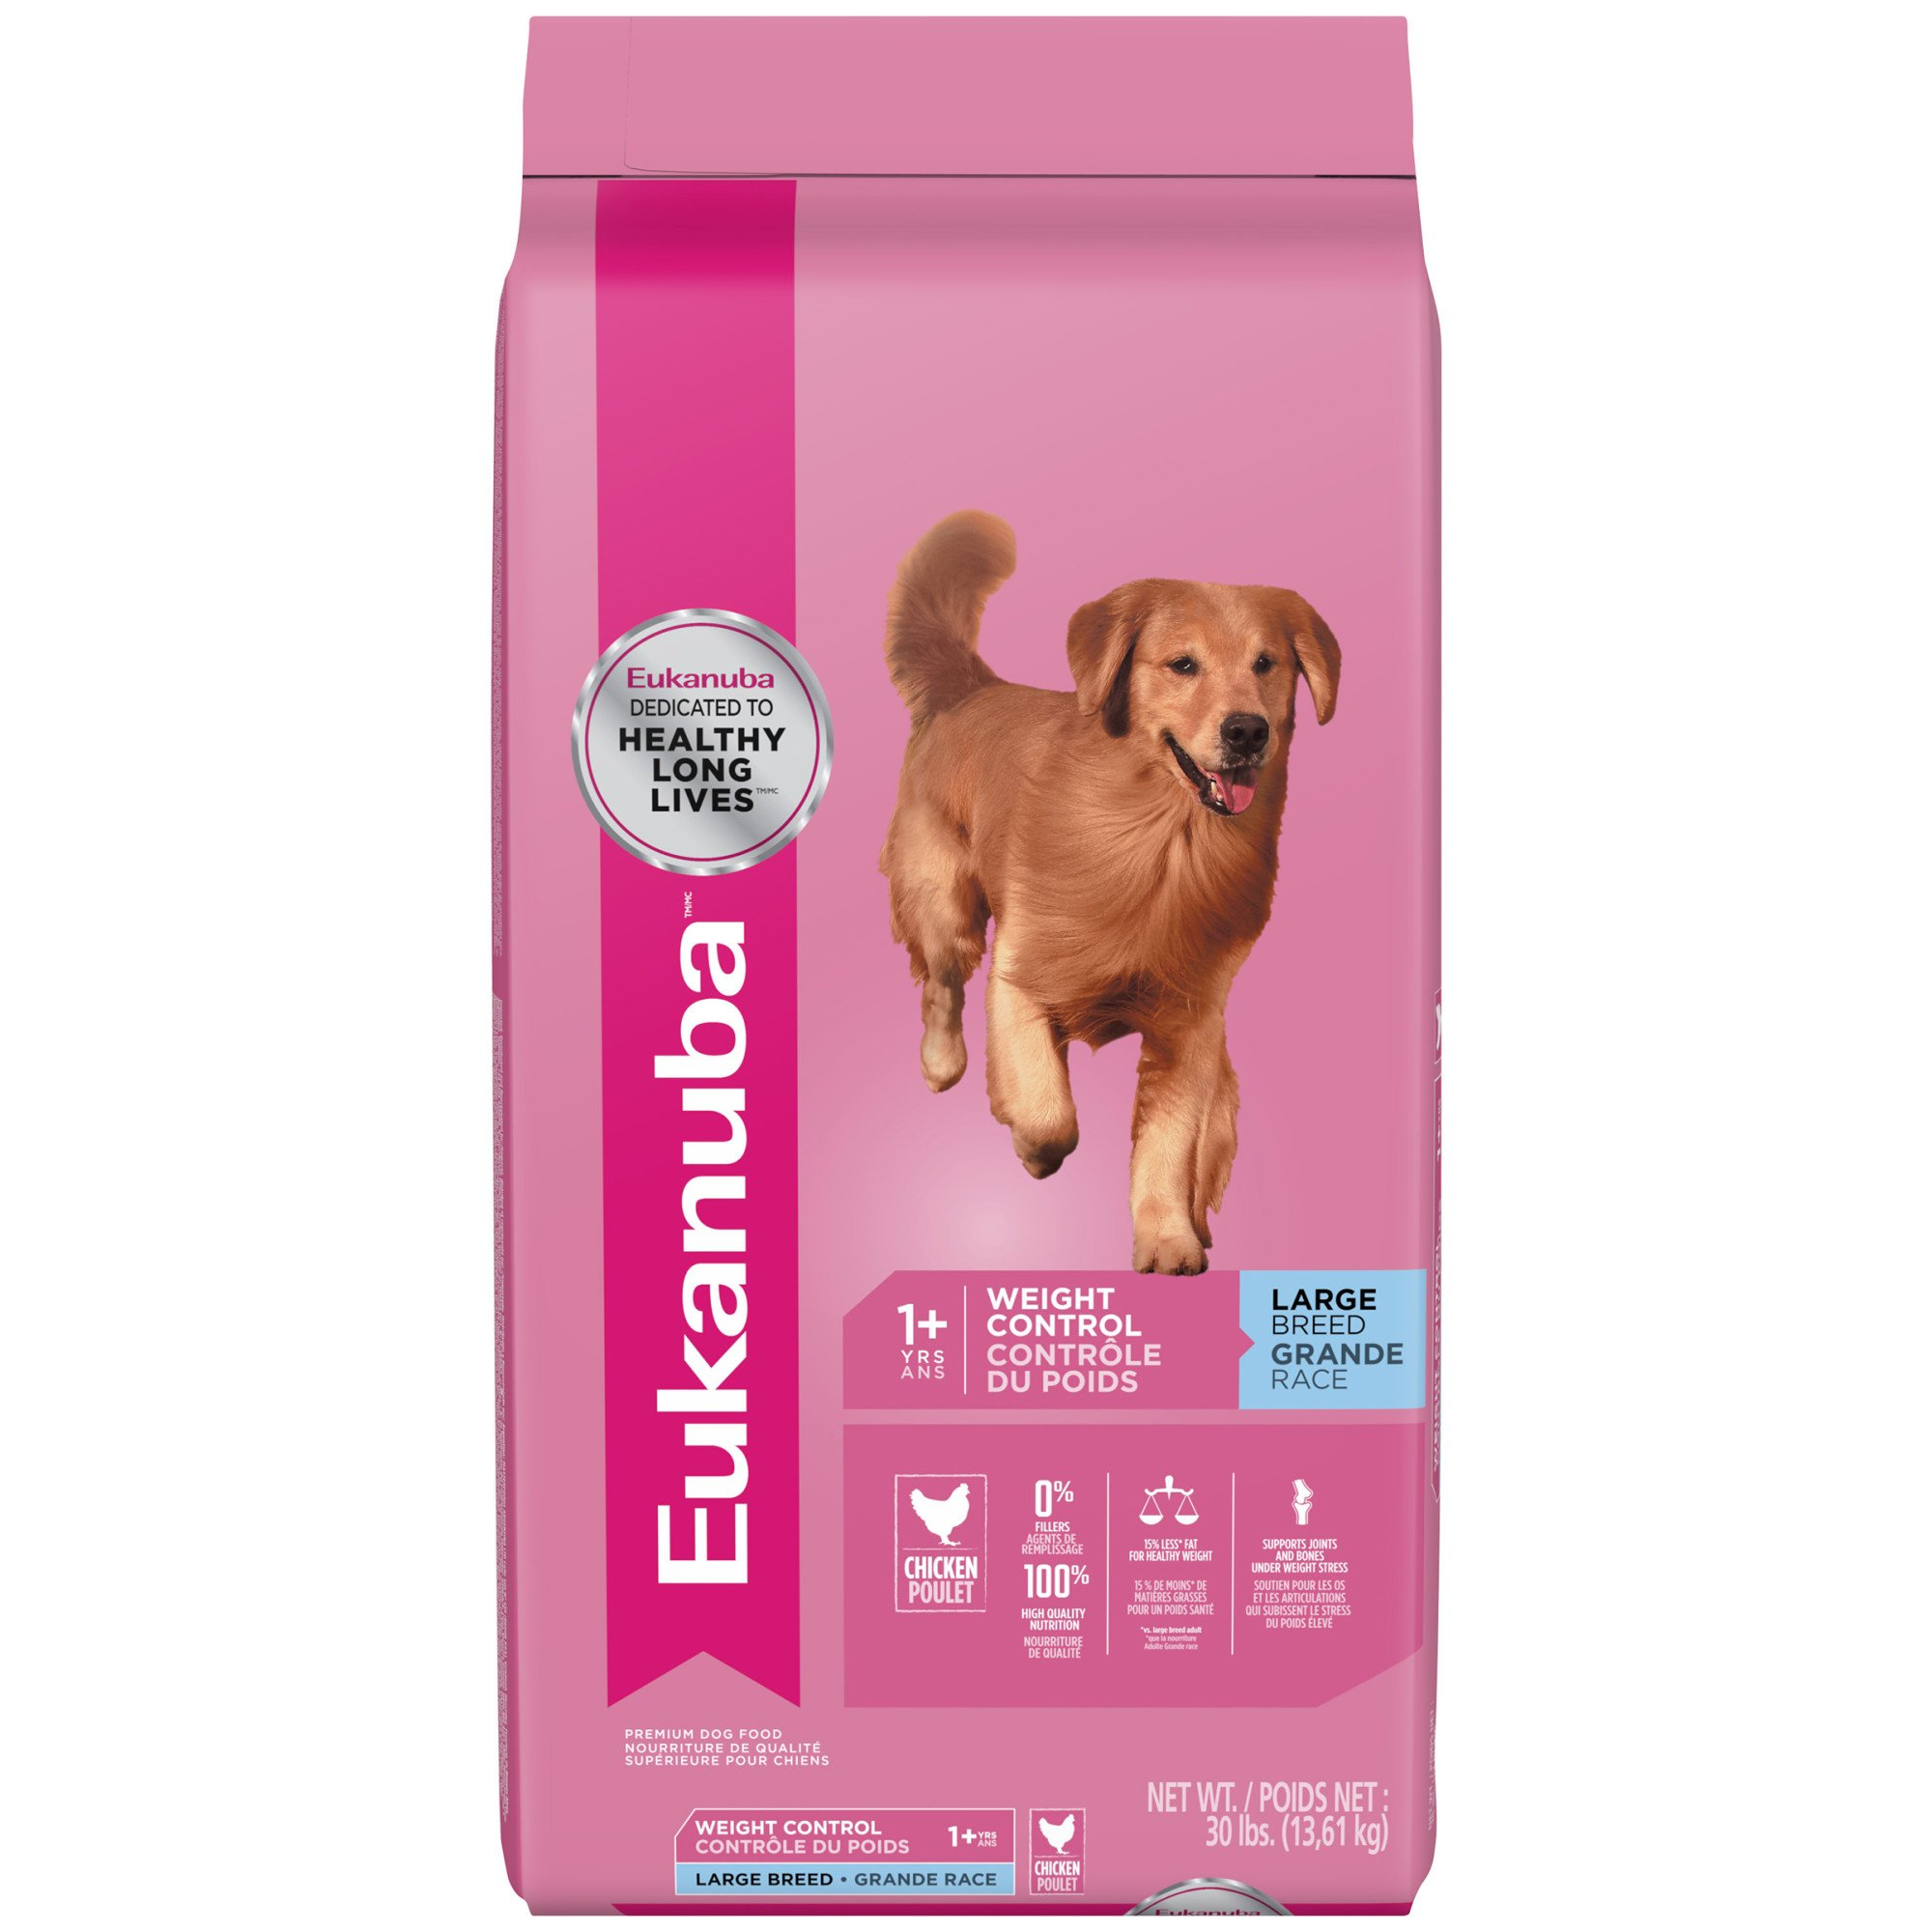 Eukanuba Grain Free Dog Food